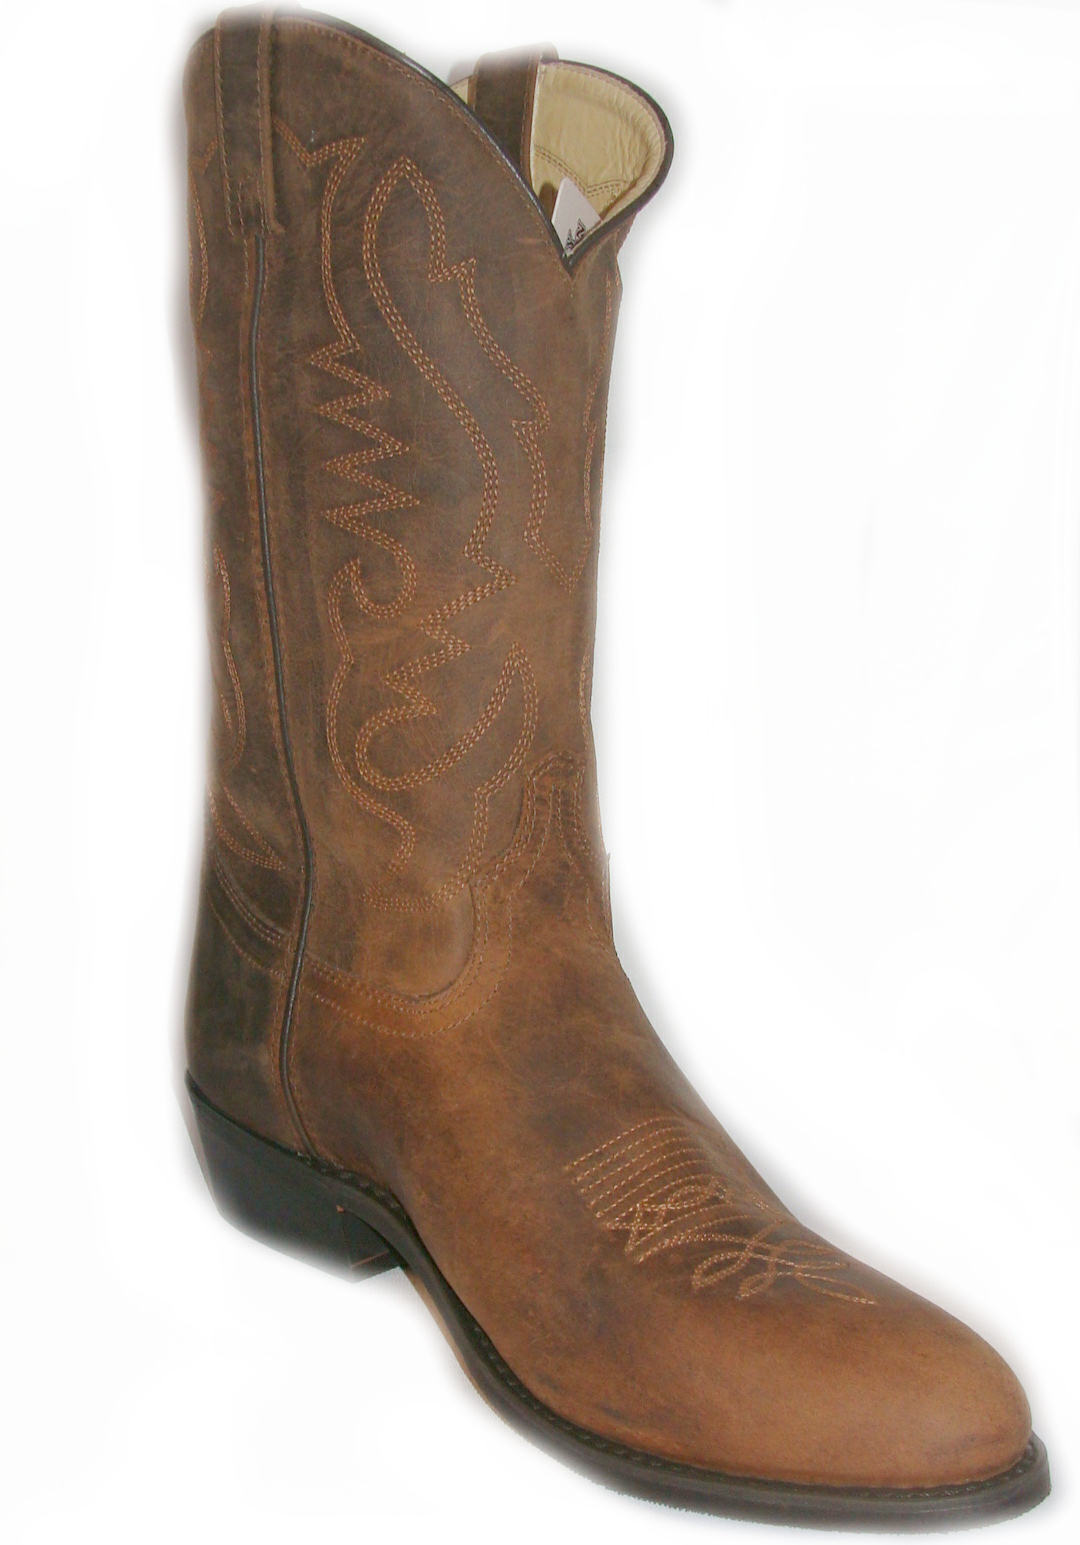 Mens cowboy boots, USA made mens cowboy boots